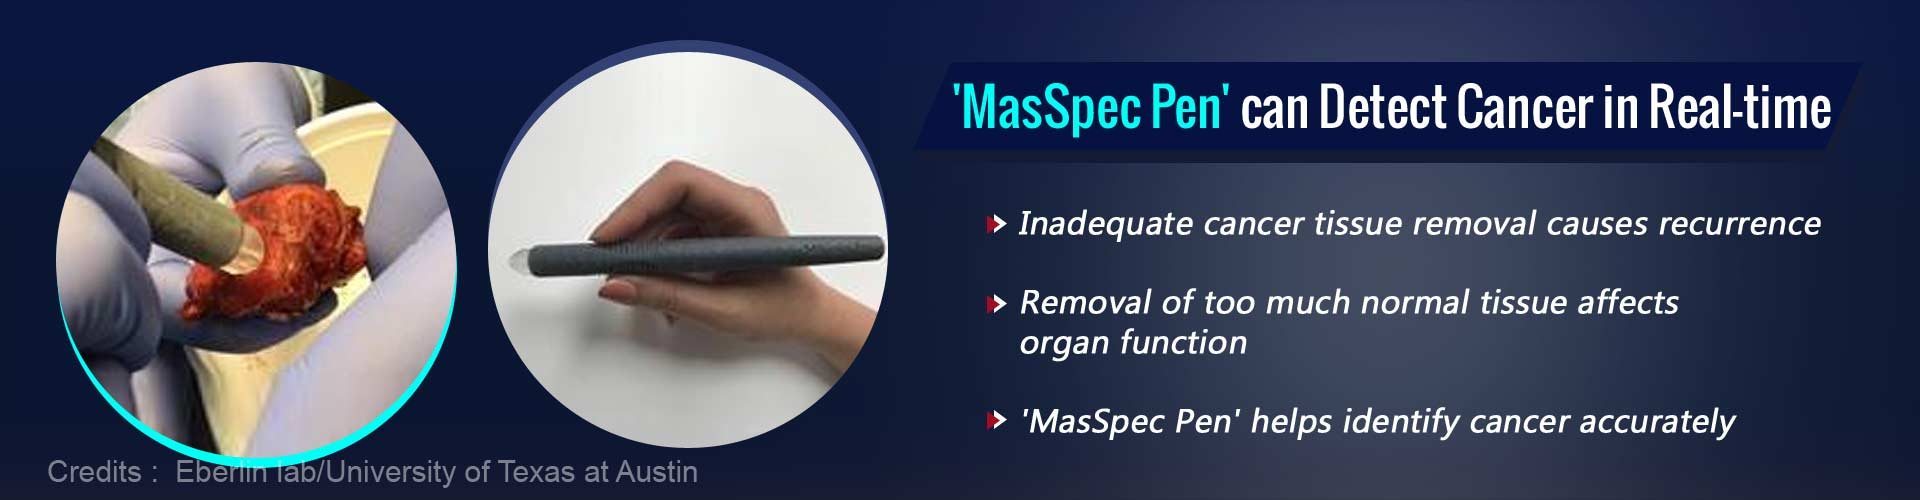 MasSpec Pen can Detect Cancer During Surgery Accurately